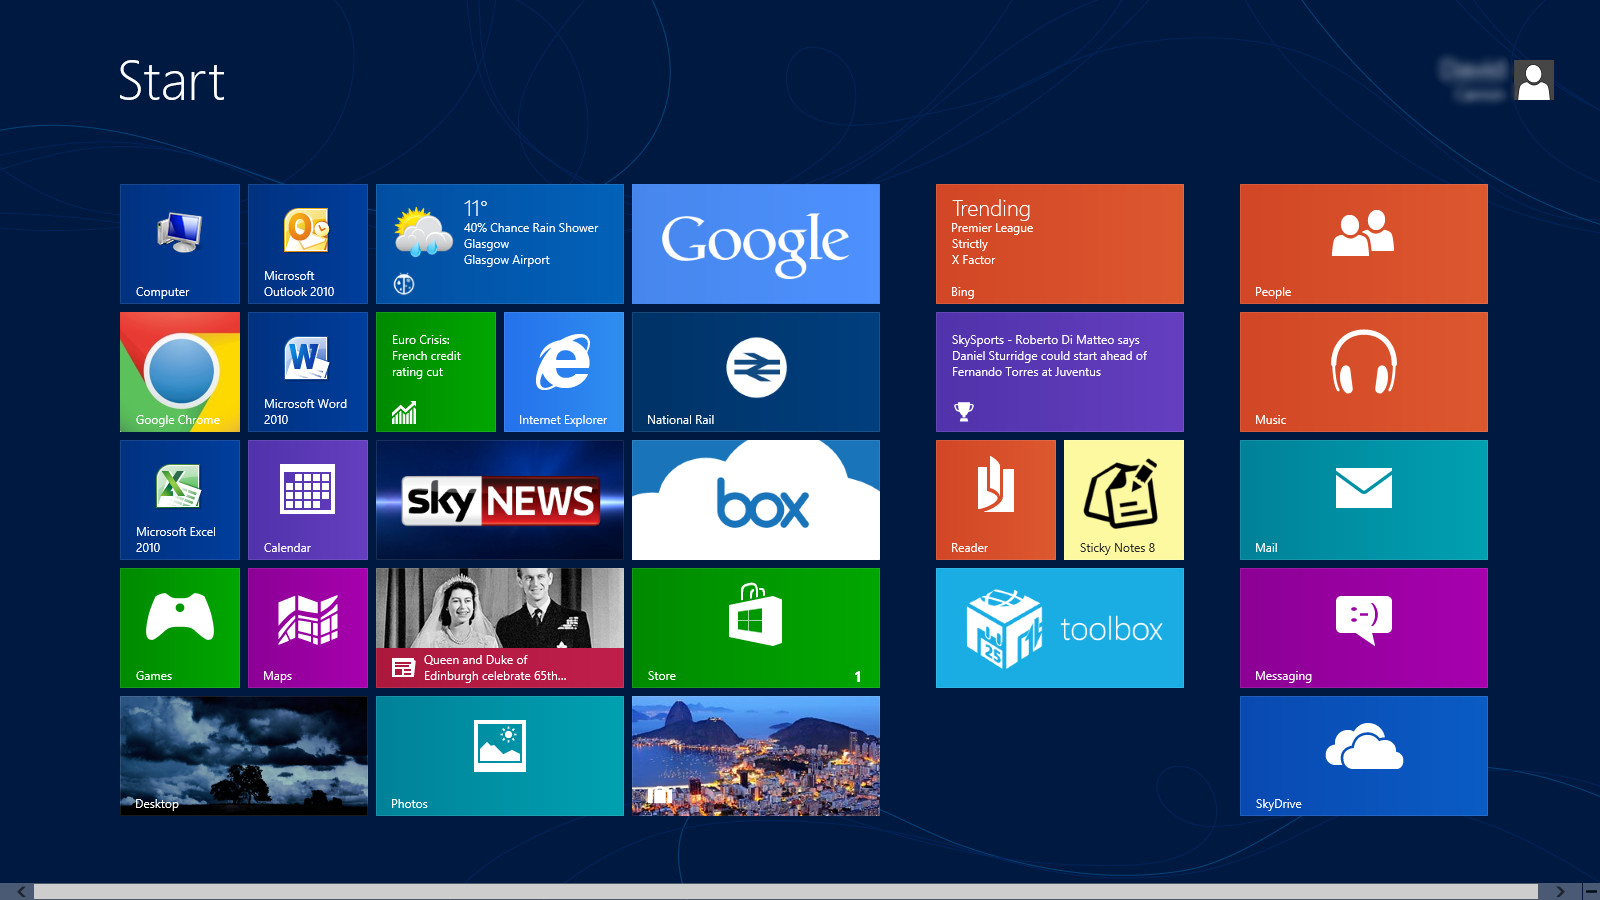 Cara Merubah Tampilan Start Screen Windows 8